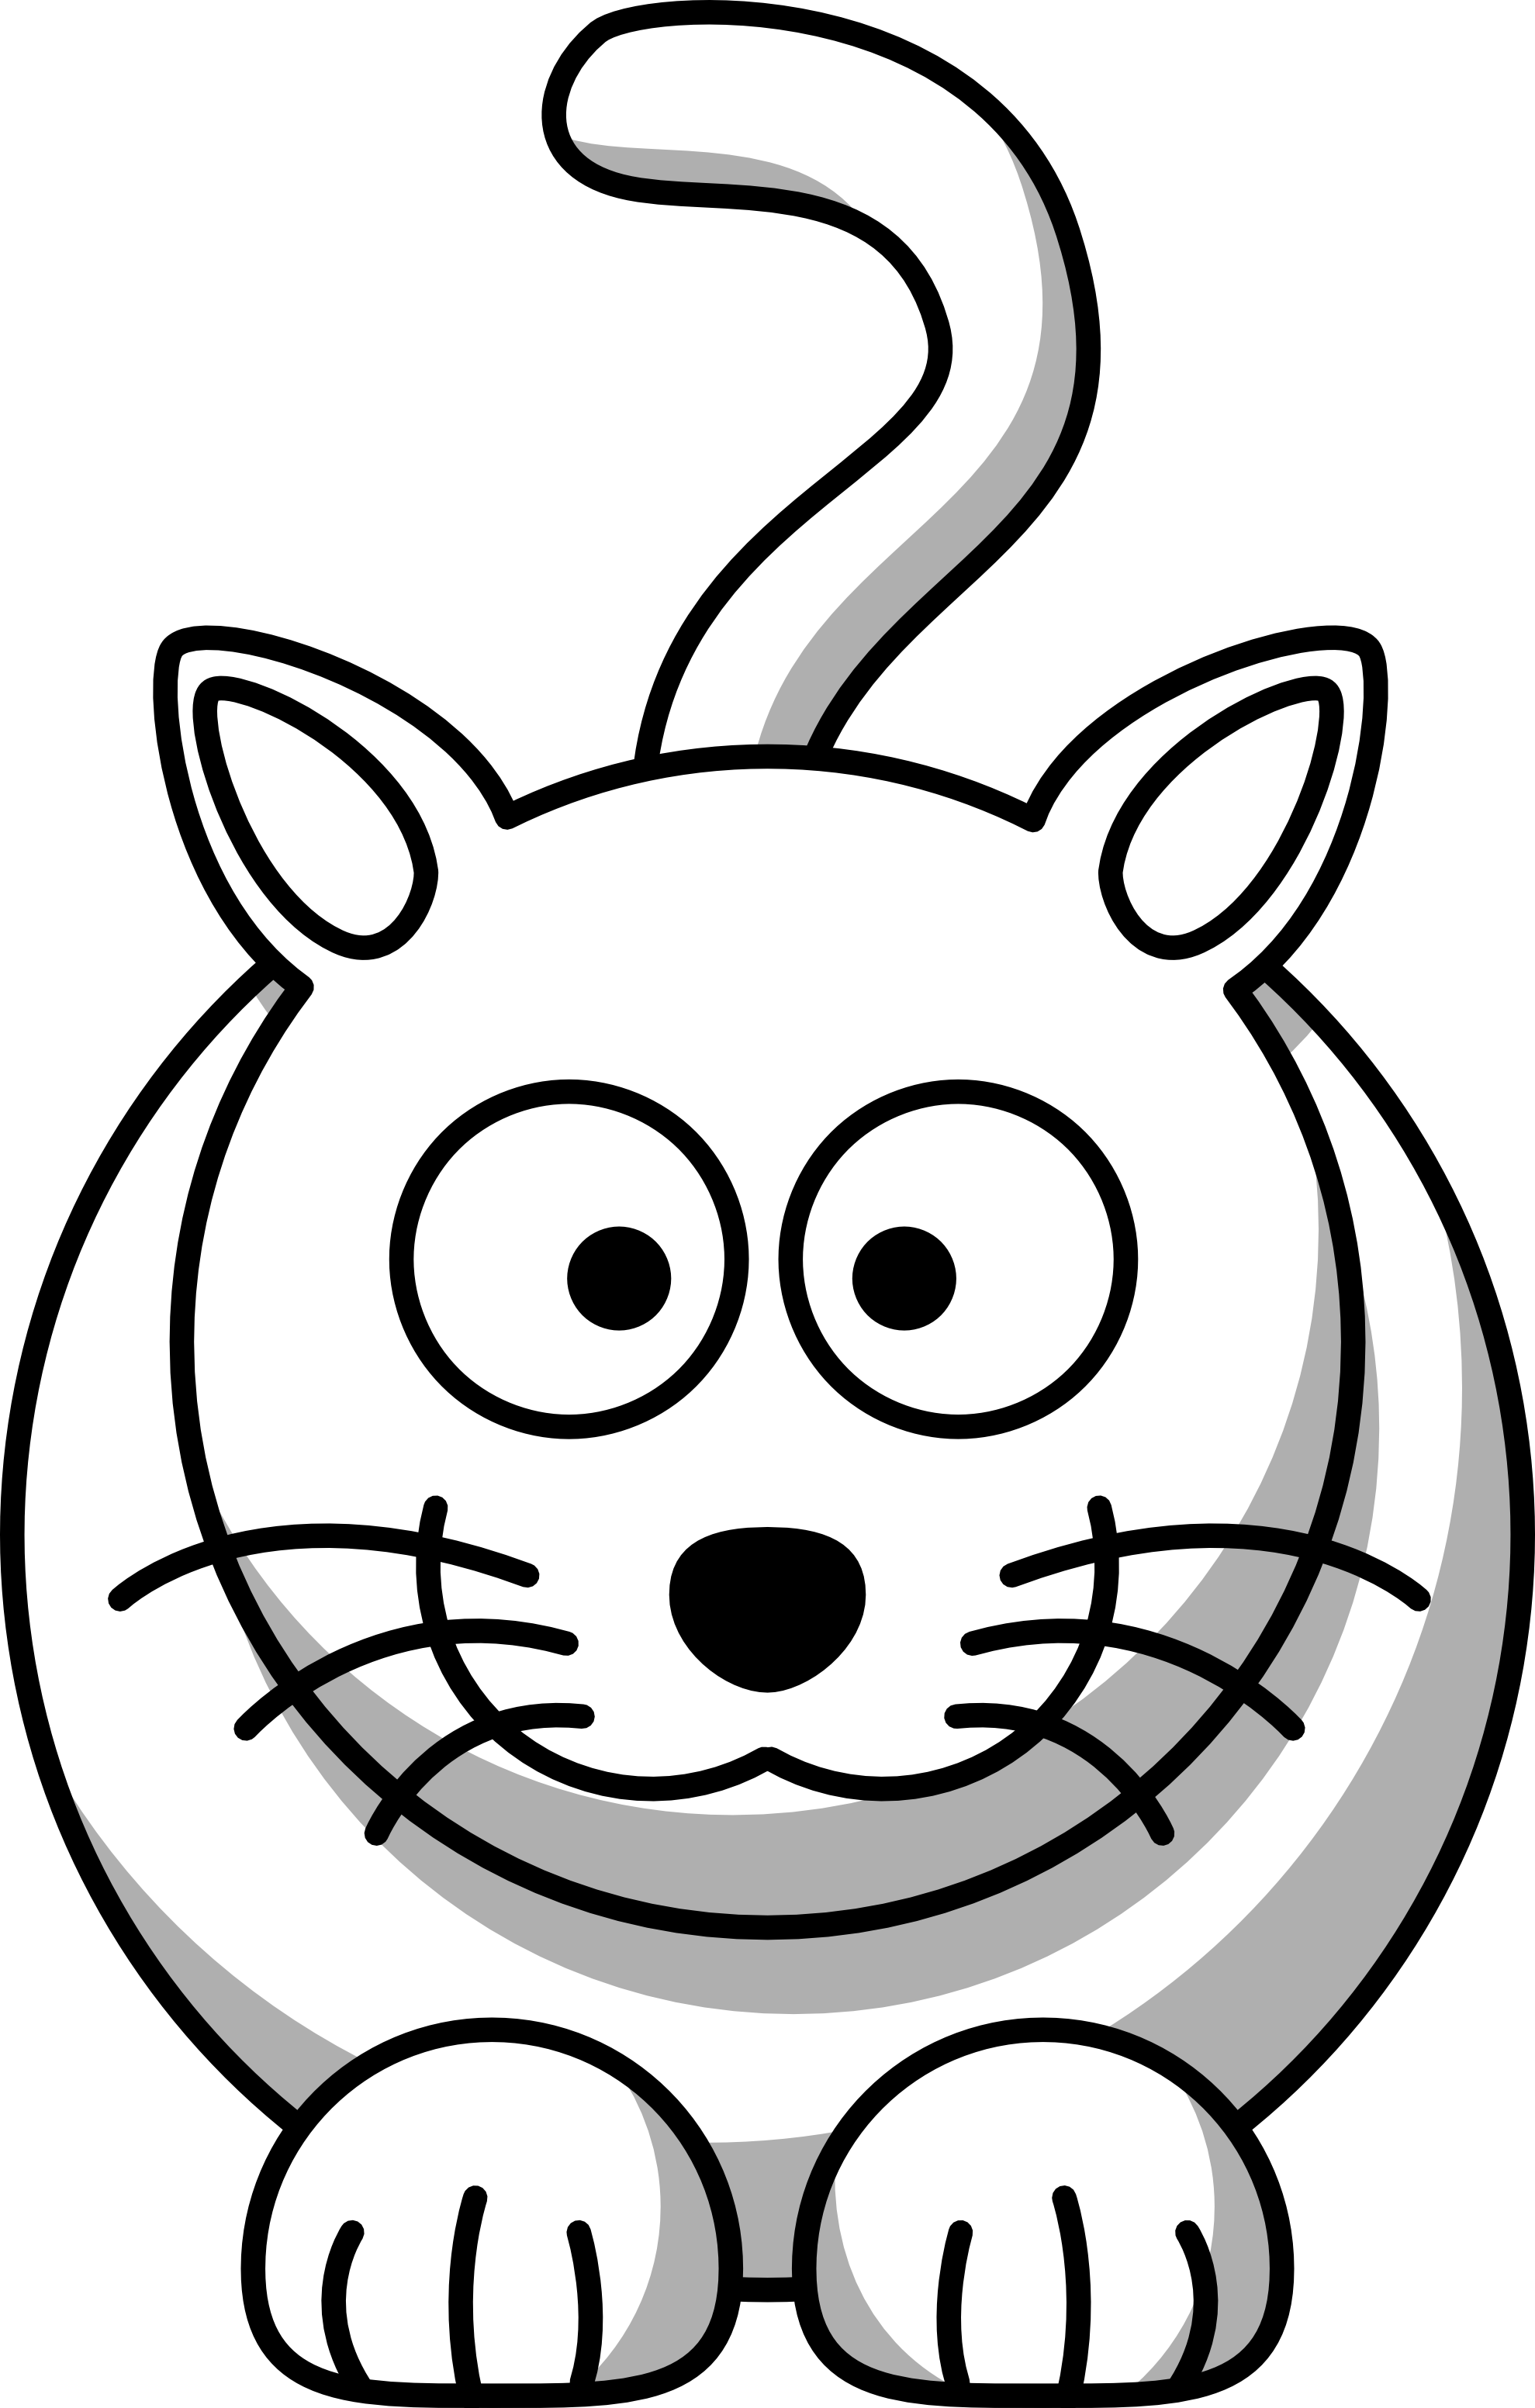 Black And White Line Drawings Of Animals : Cartoon animal black and white clipart suggest